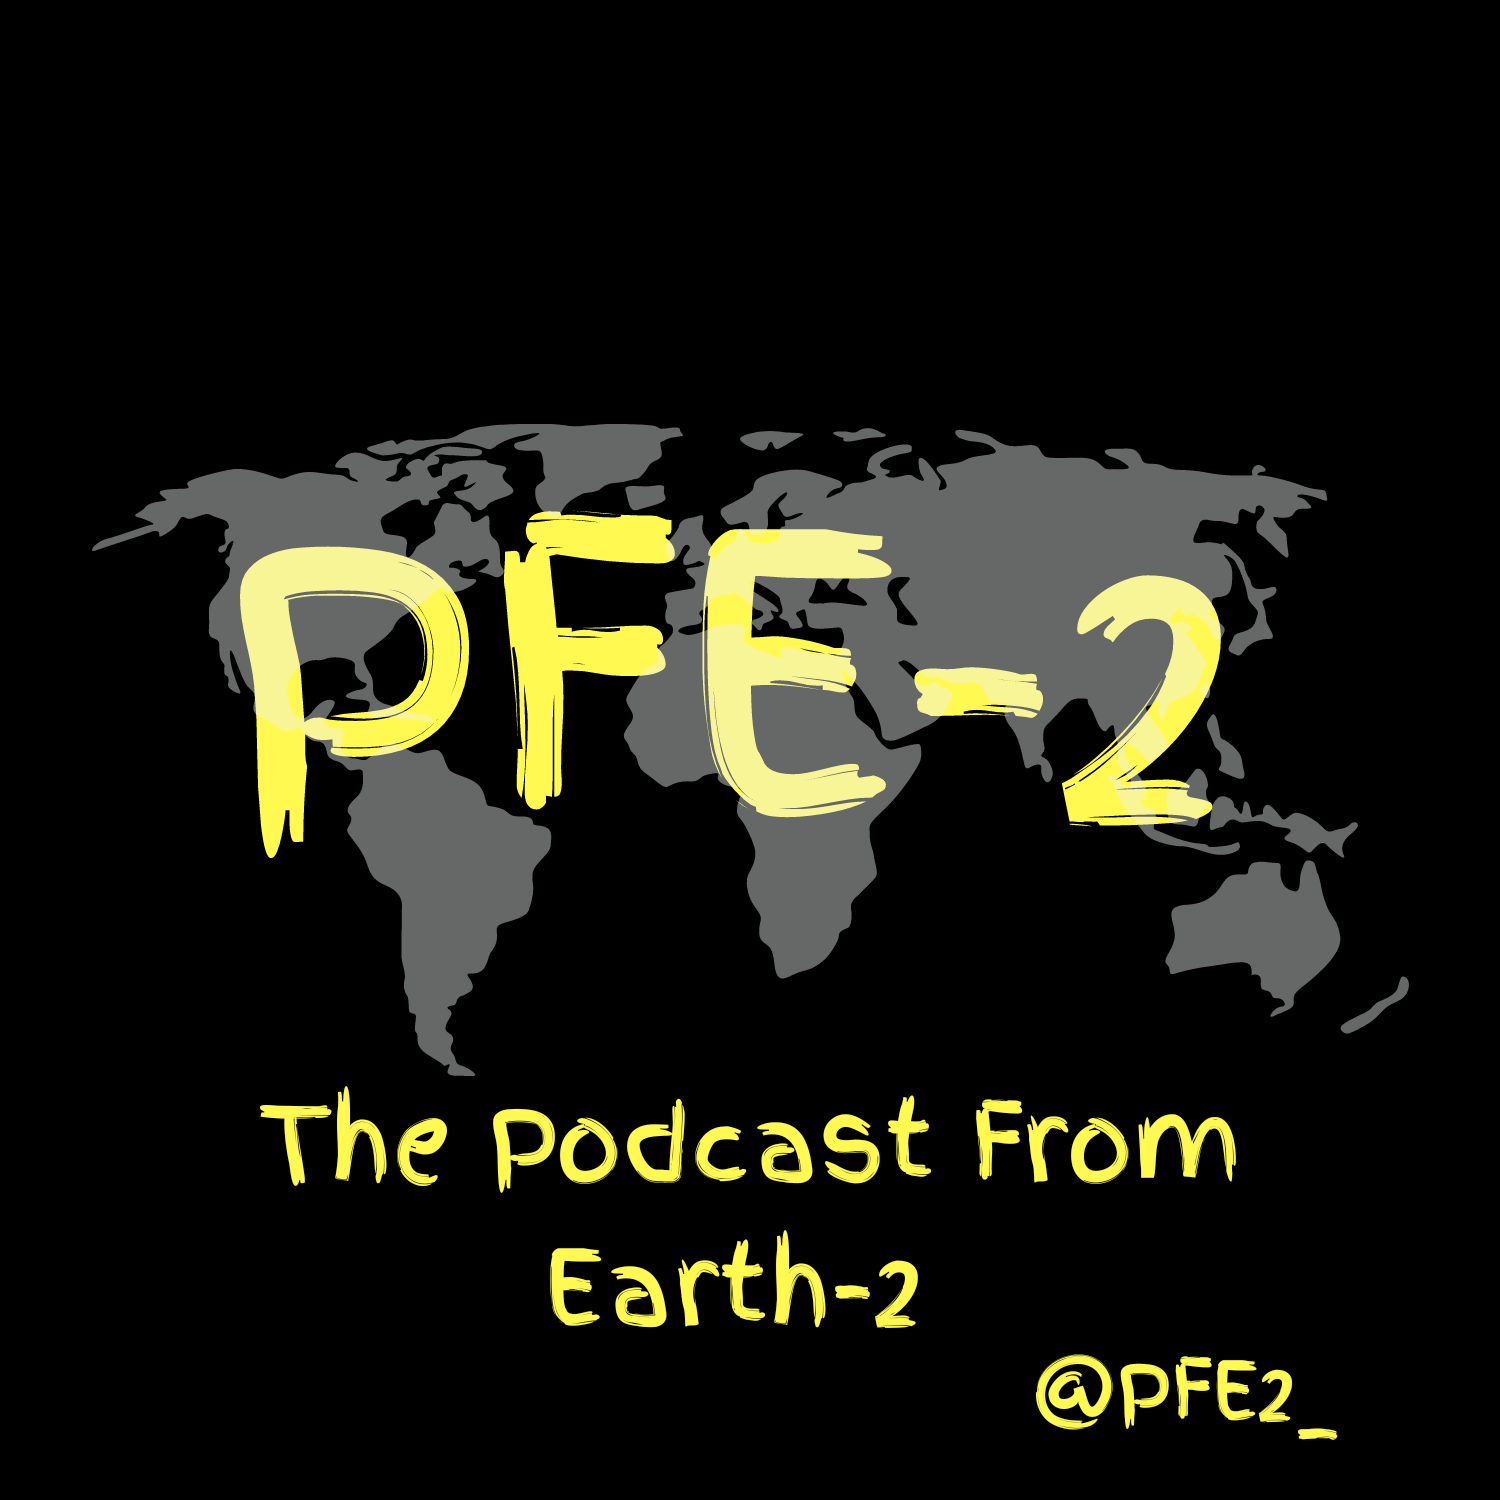 The Podcast From Earth-2